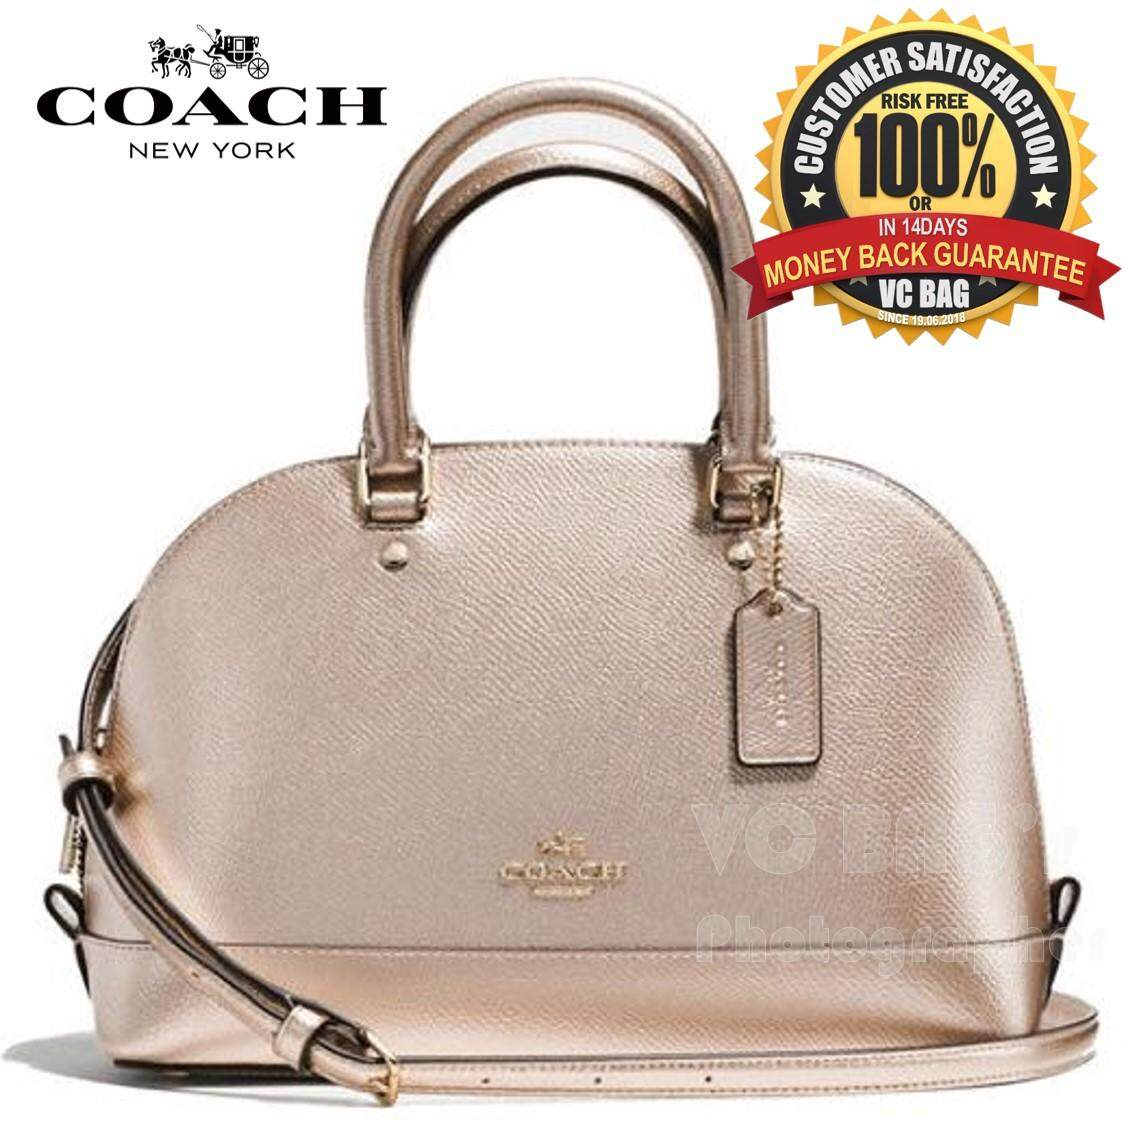 COACH F56190 Mini Sierra Satchel in Metallic Crossgrain Leather Bag   Imitation Gold Platinum  7a40ee03e9aa2